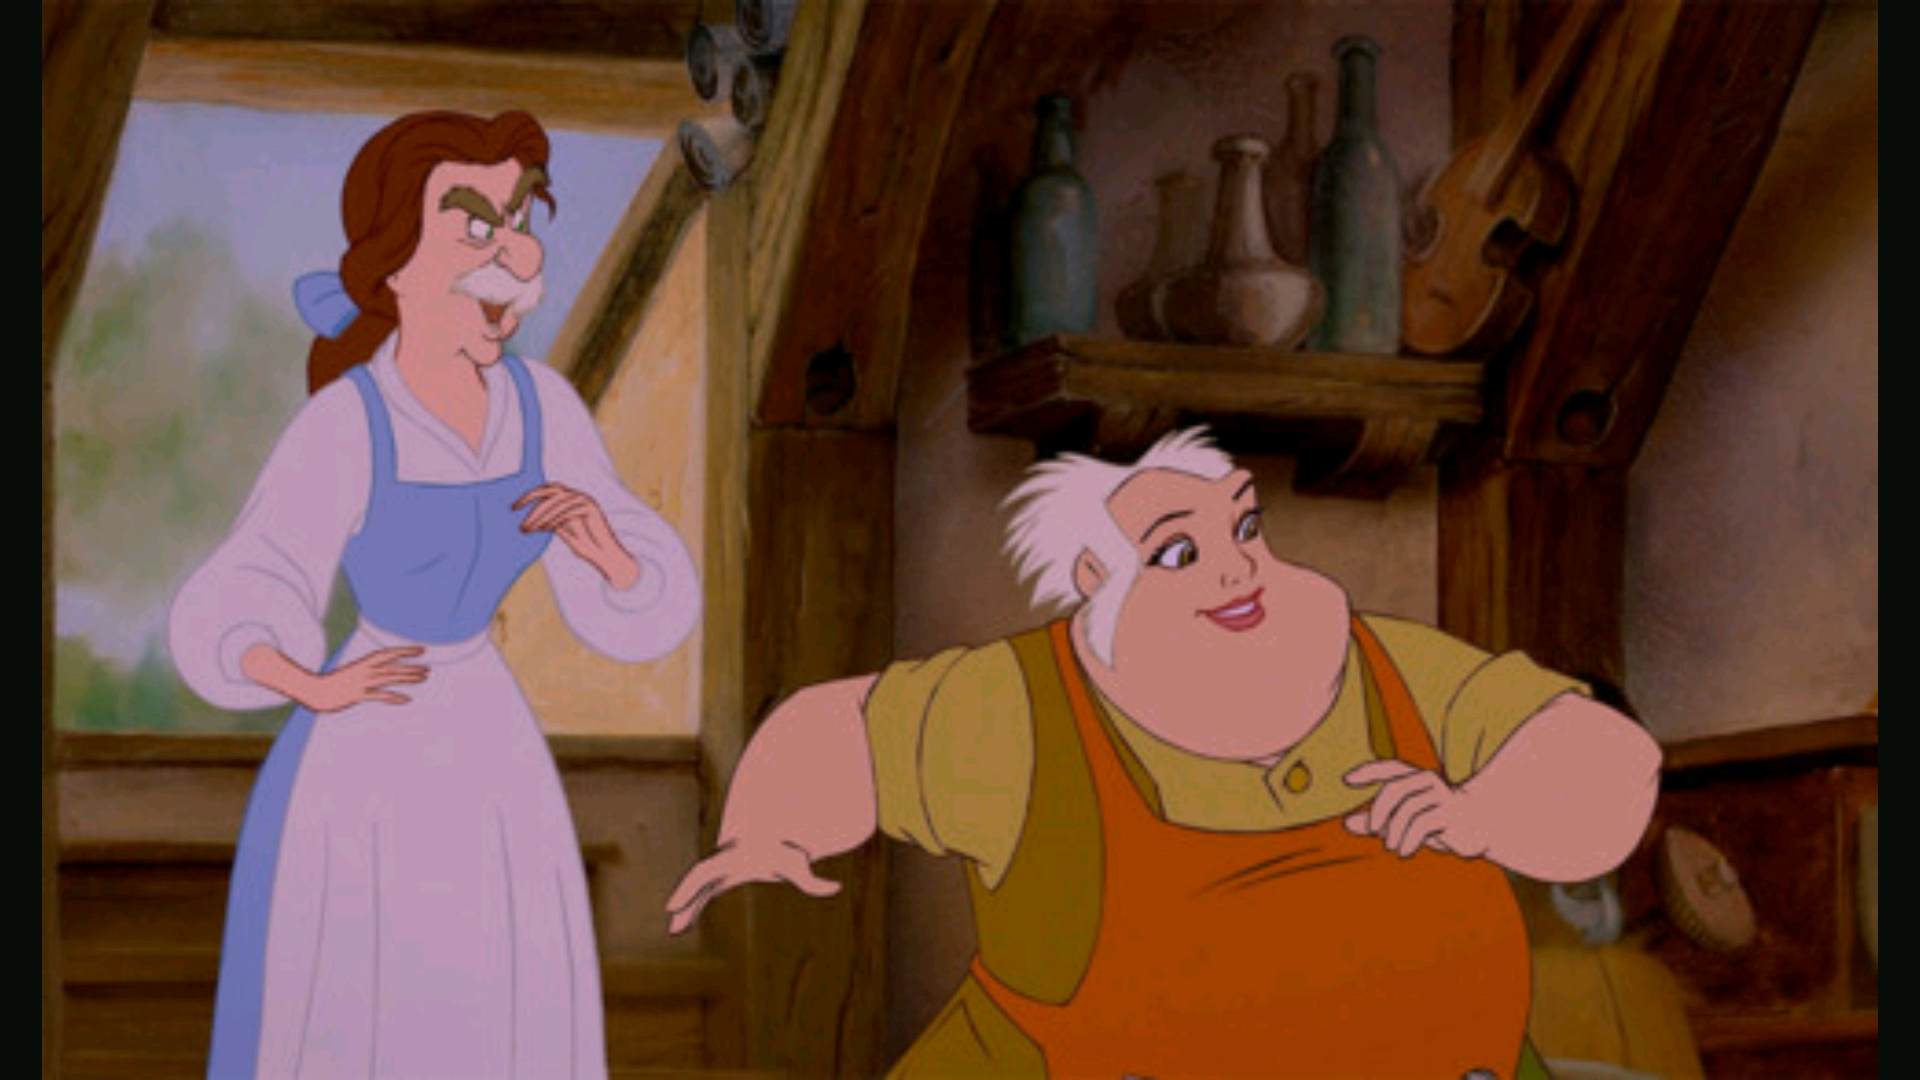 Maurice and Belle Swap Results in an Epic Mustache